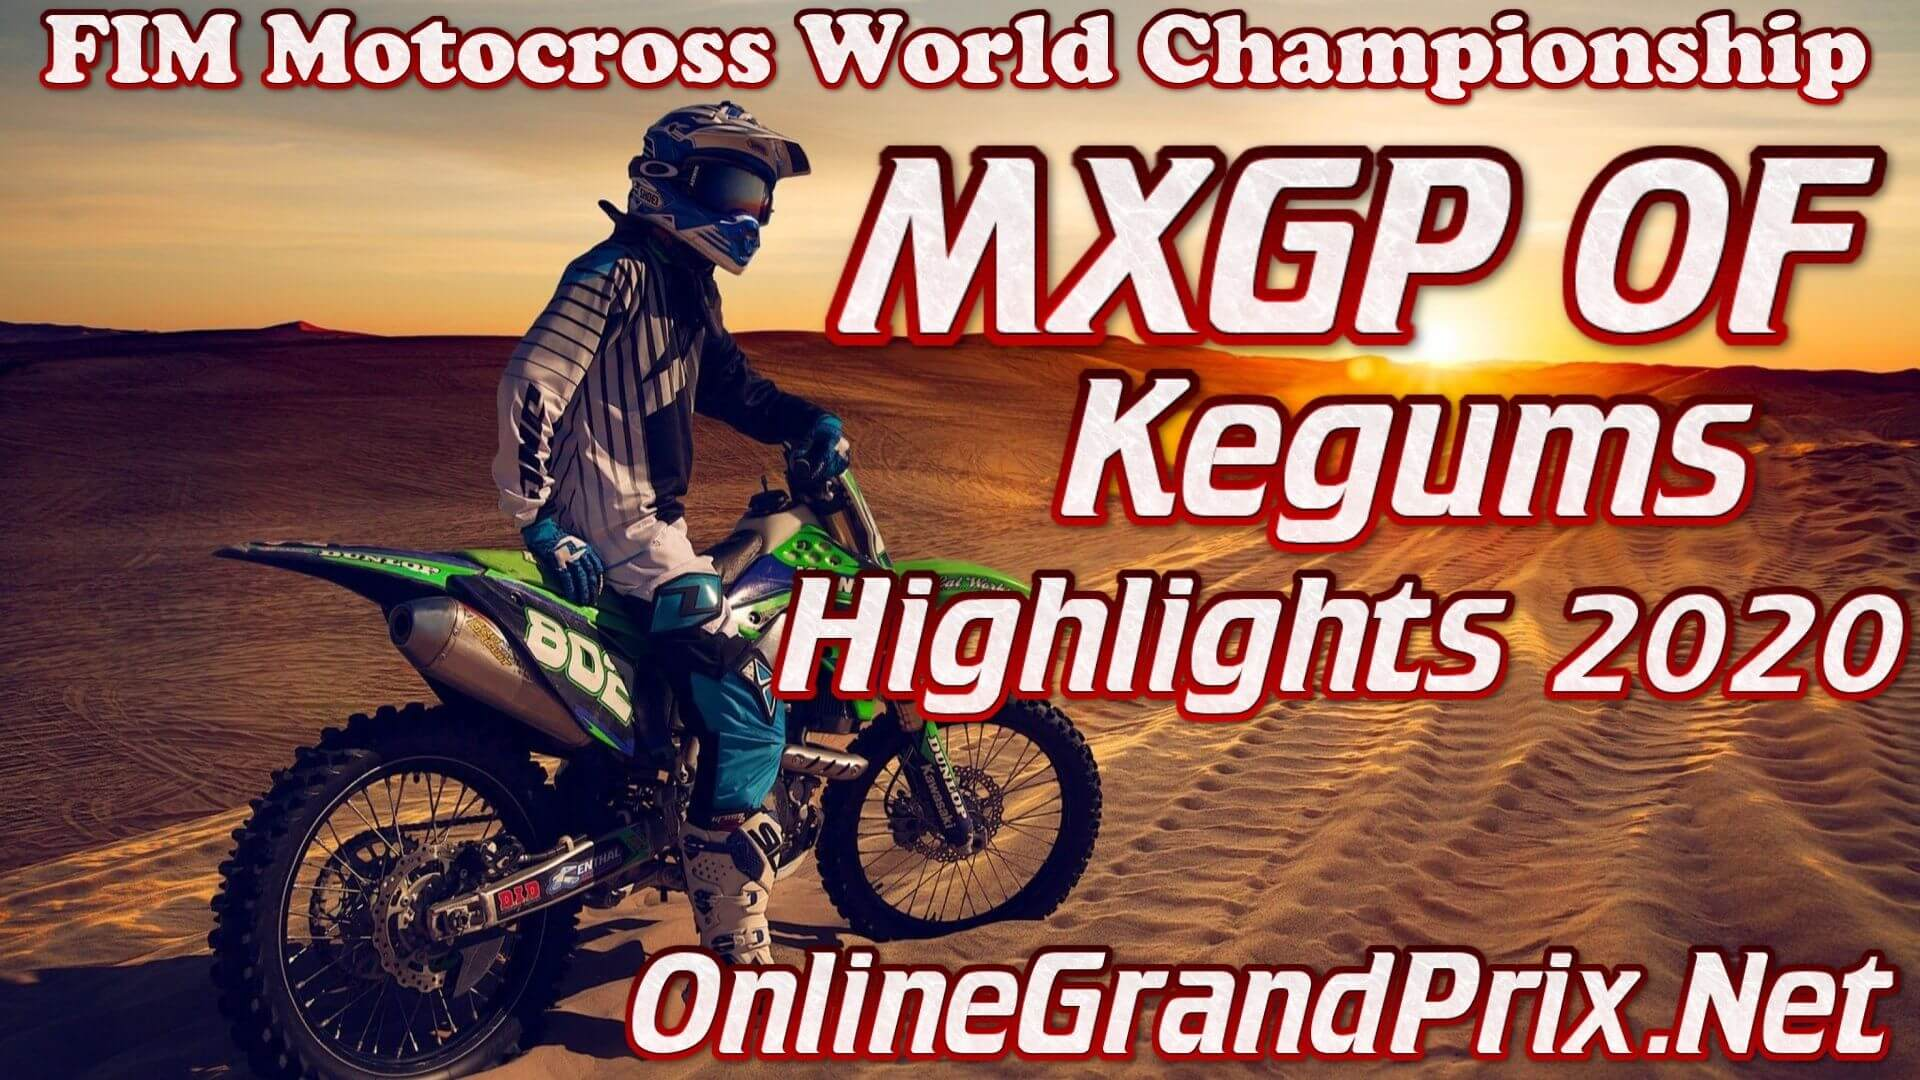 MXGP of Kegums Highlights 2020